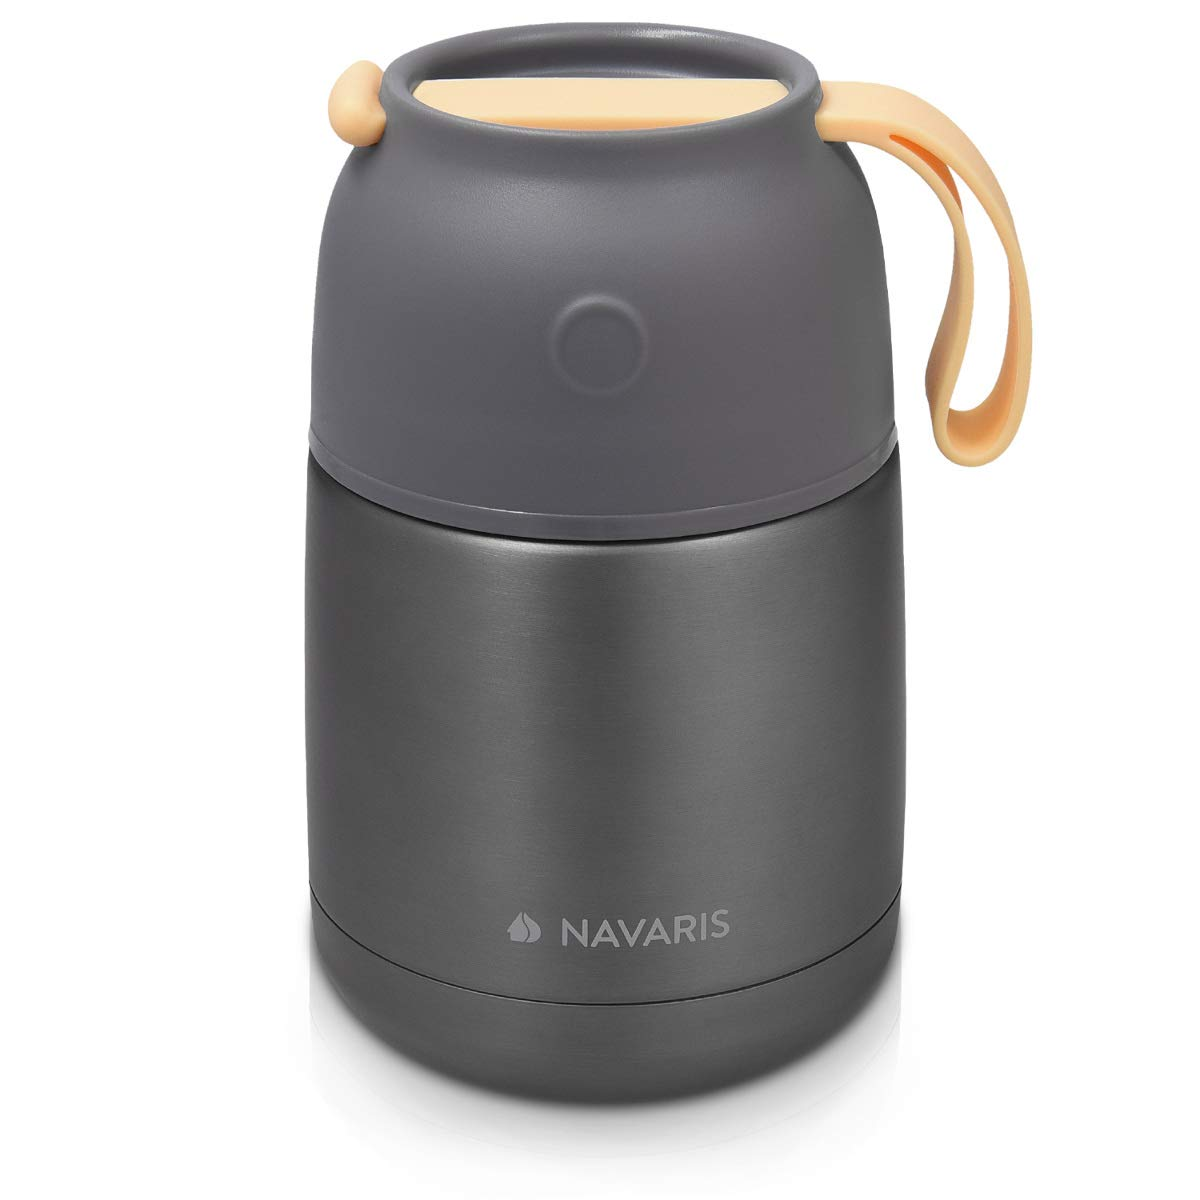 Navaris Vacuum Insulated Food Jar - Stainless Steel Food Flask Container with Wide Mouth for Hot or Cold Lunch - Size S (15.2 oz / 450 ml), Dark Gray